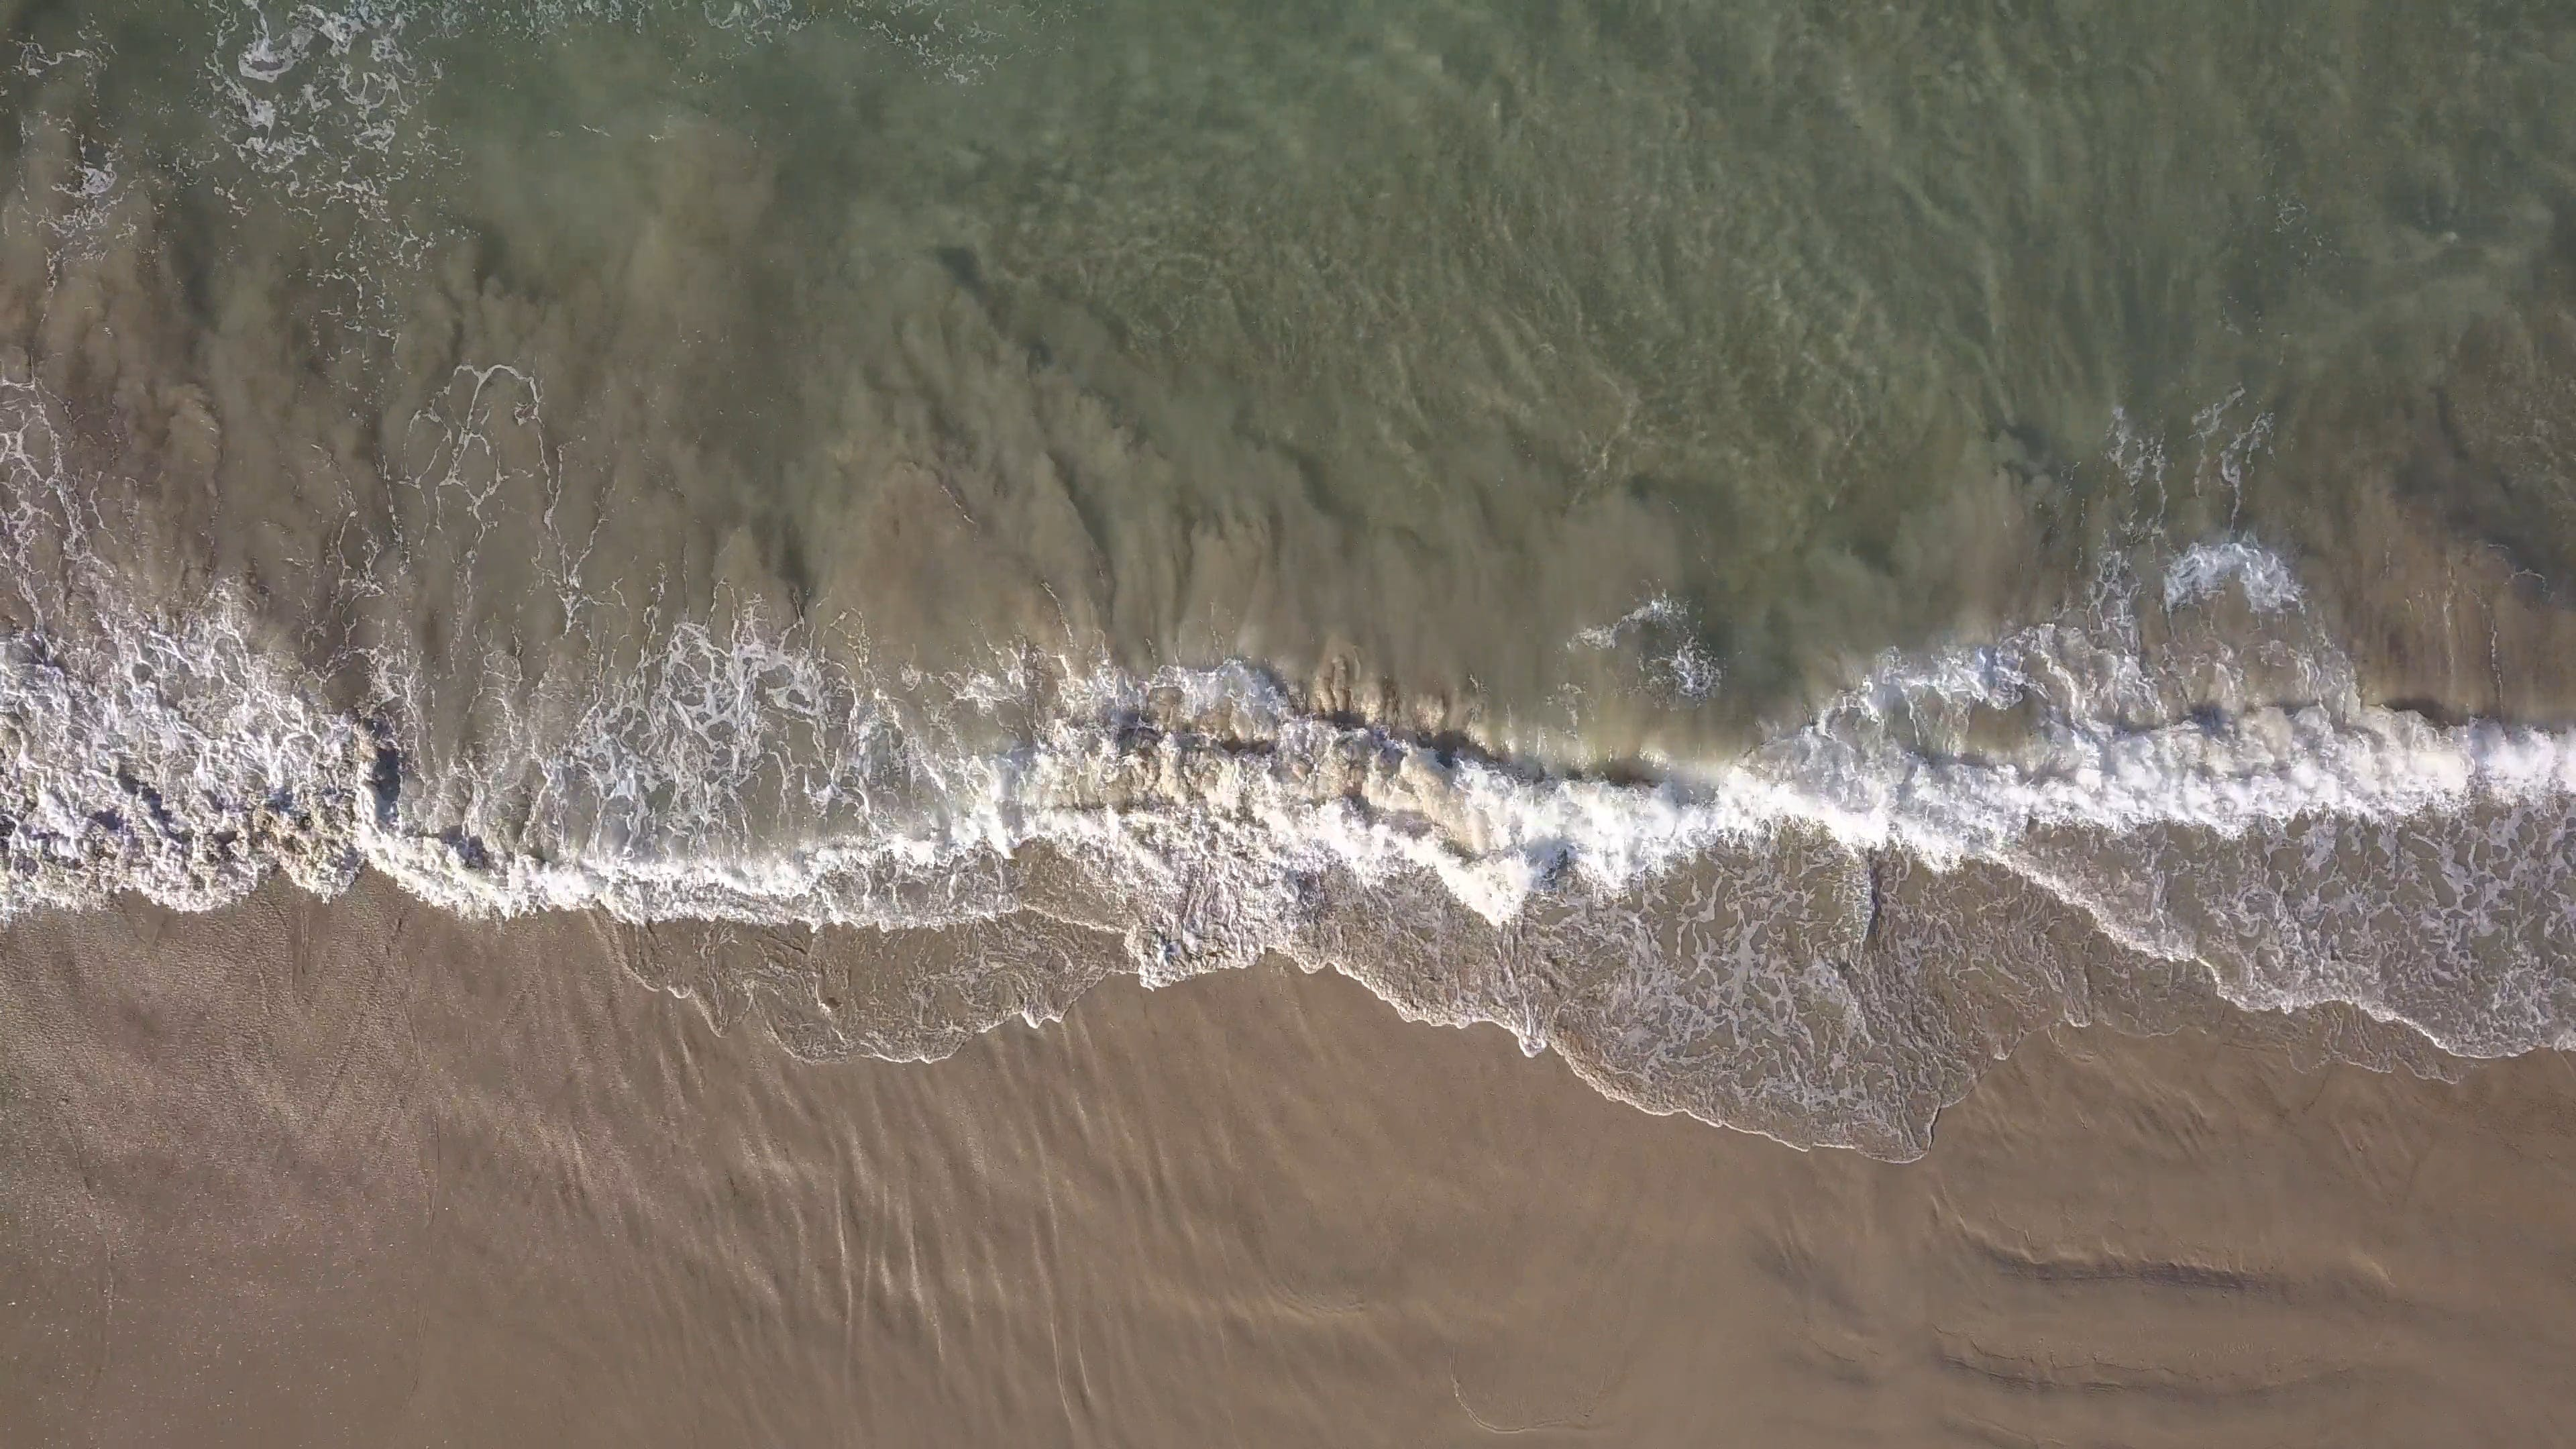 Waves Rushing To The Shore